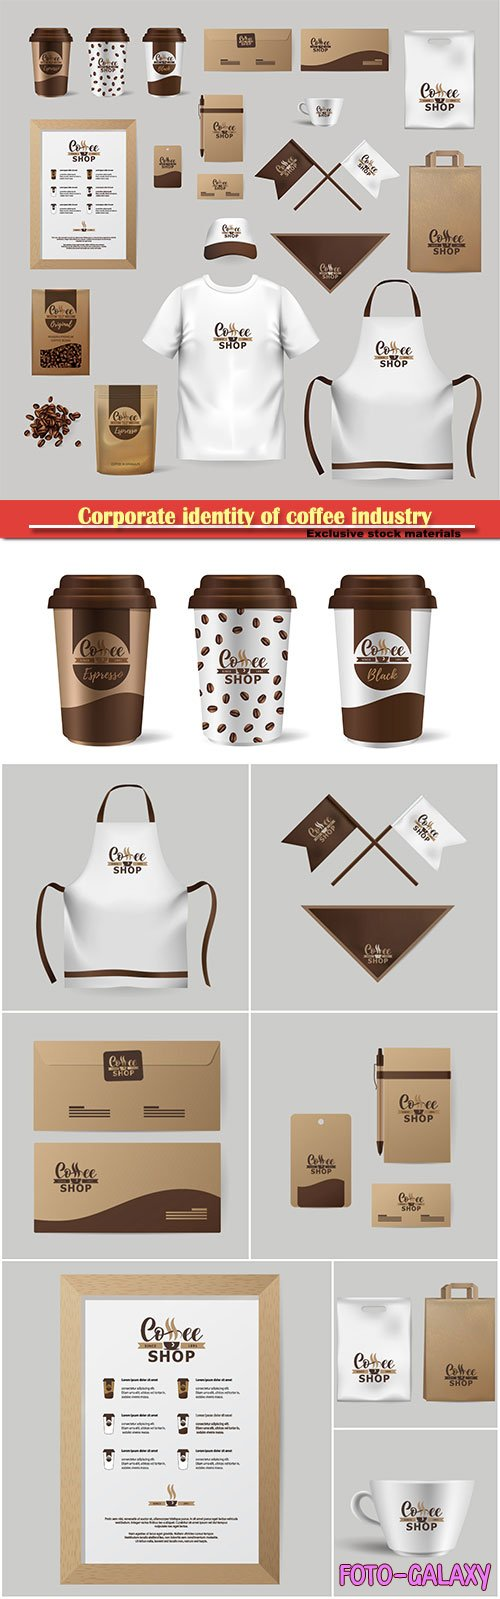 Corporate identity of coffee industry, realistic branding mock up template for cafe, coffee shop